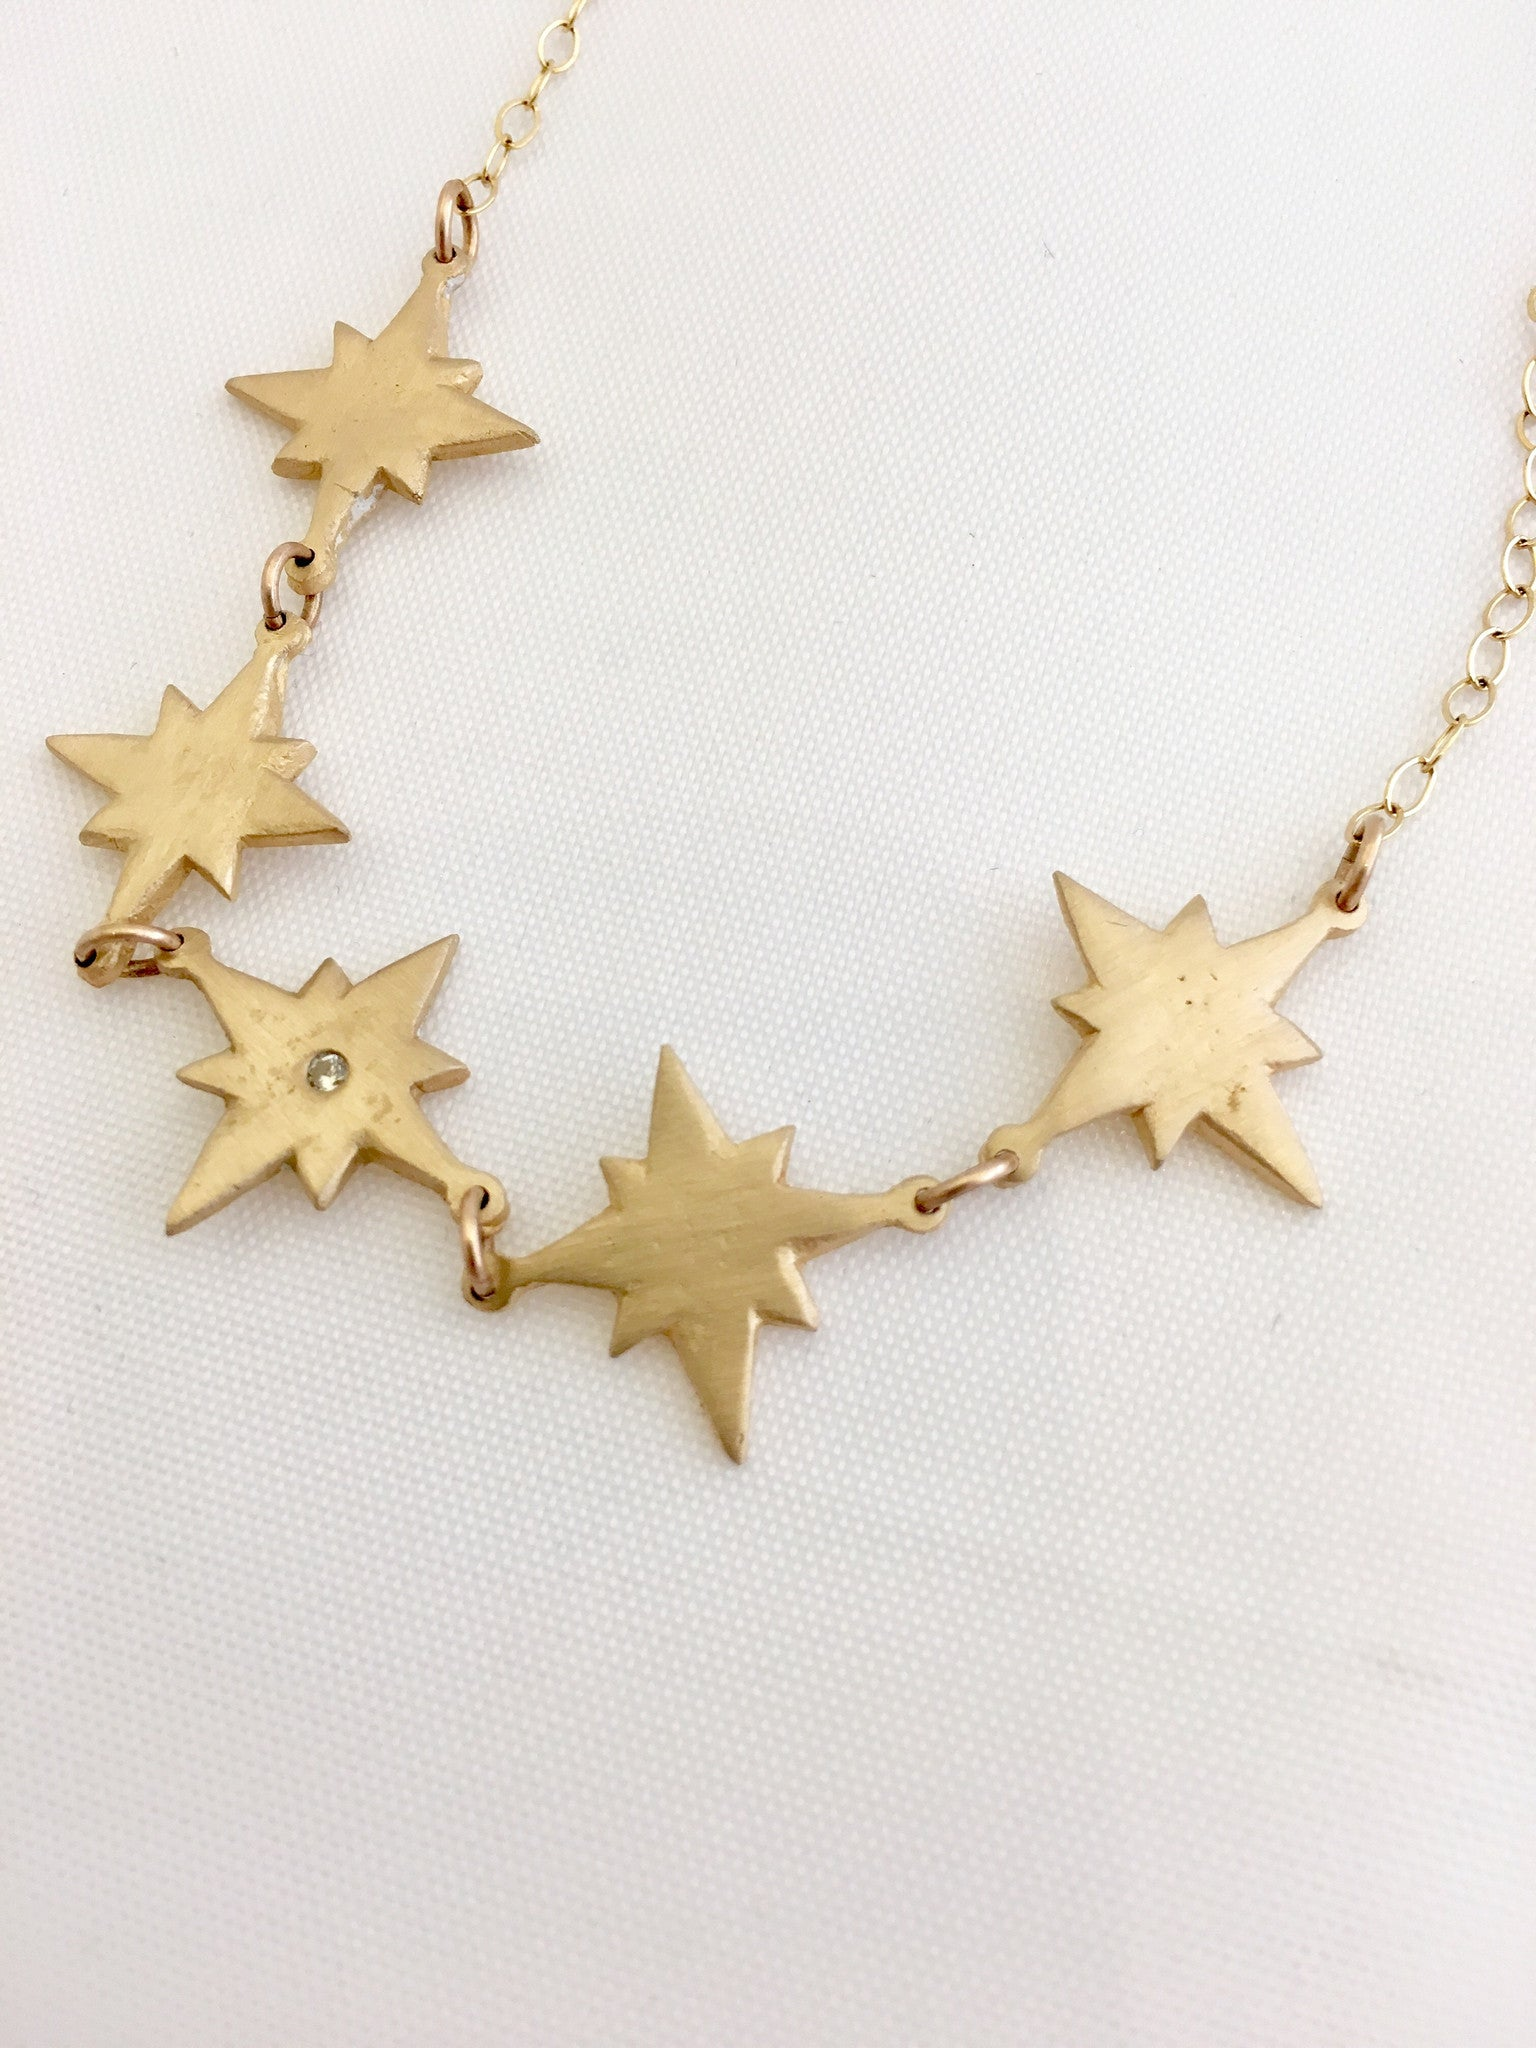 My Stars Necklace